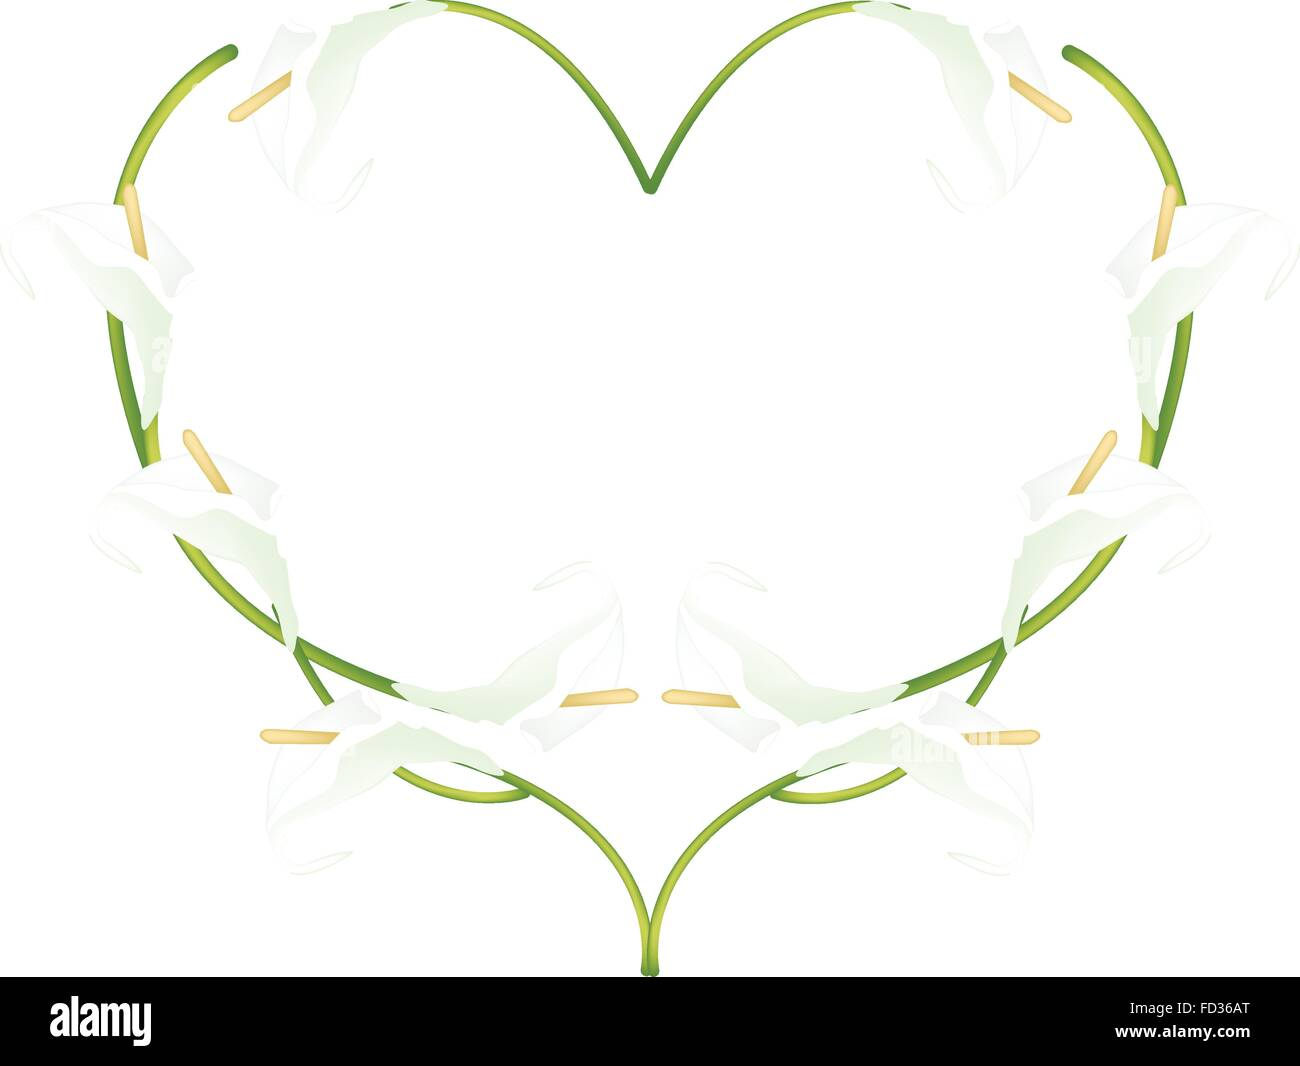 Love Concept, Illustration of White Anthurium Flowers or Flamingo Flowers Forming in Heart Shape Isolated on White - Stock Vector